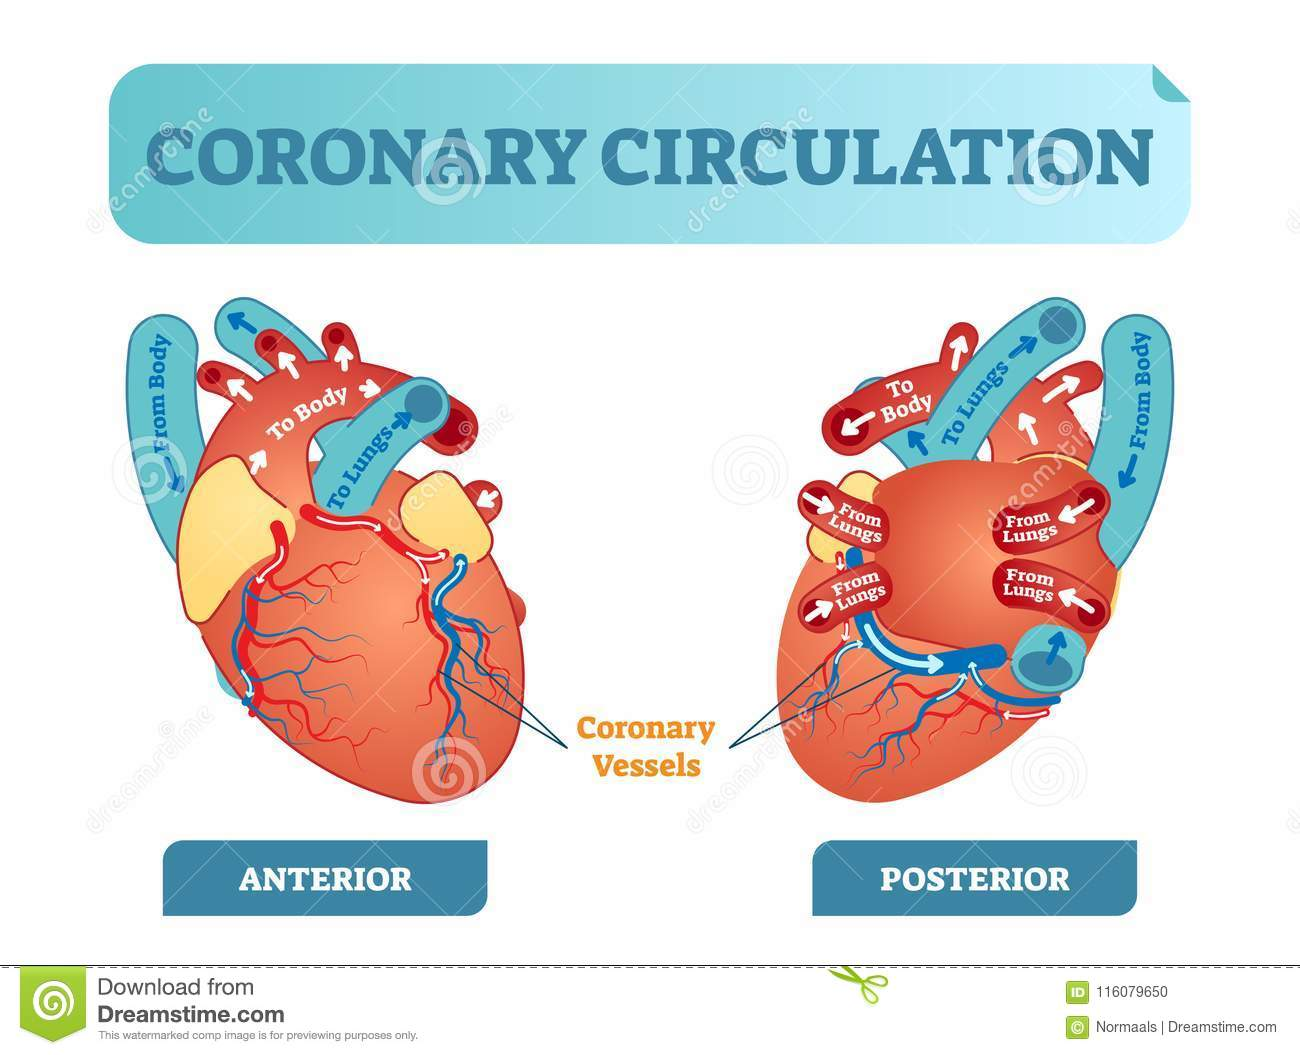 hight resolution of coronary circulation anatomical cross section diagram labeled vector illustration scheme blood flow circuit